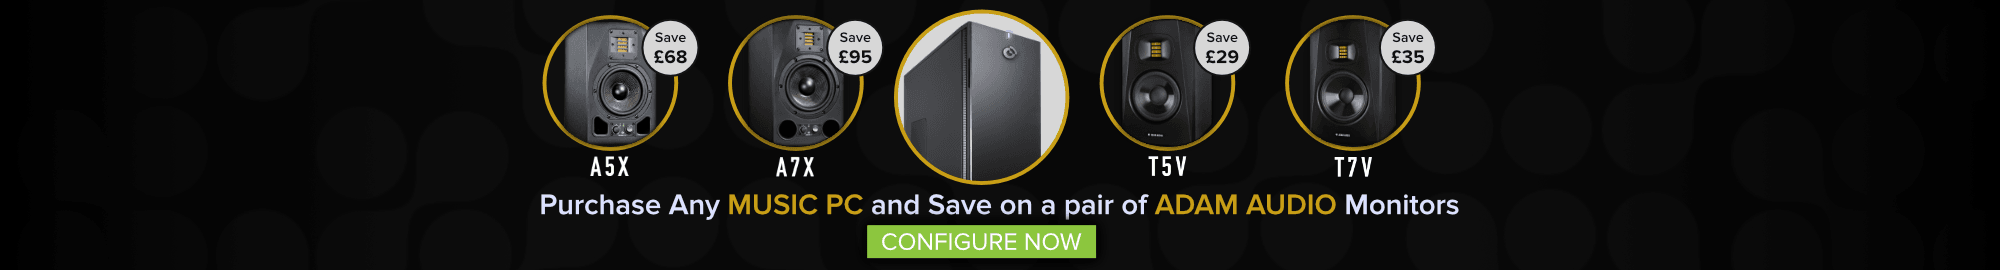 Buy any Music PC and Save up to £95 on a pair of ADAM AUDIO Monitors